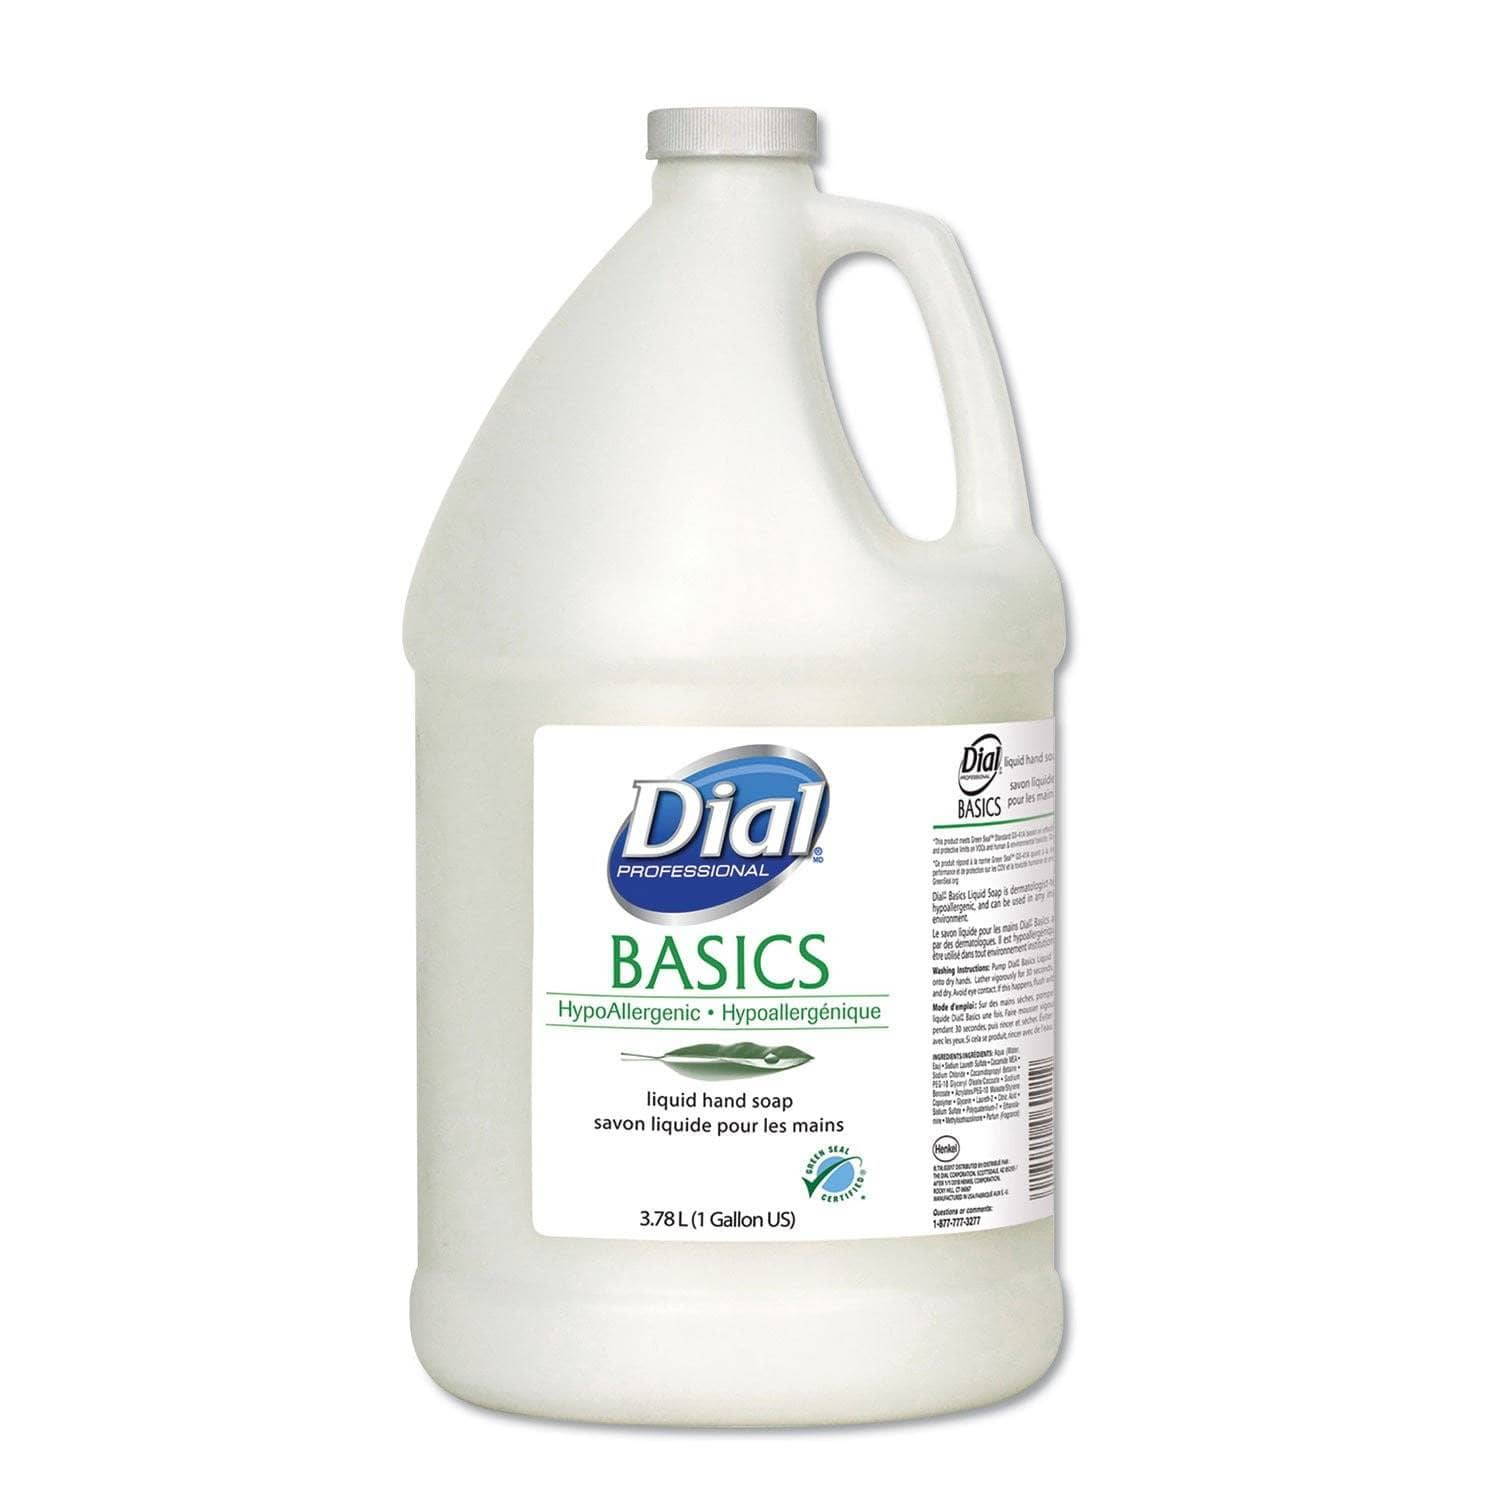 Dial Basics Liquid Hand Soap, Fresh Floral, 1 Gal Bottle - DIA06047EA - TotalRestroom.com